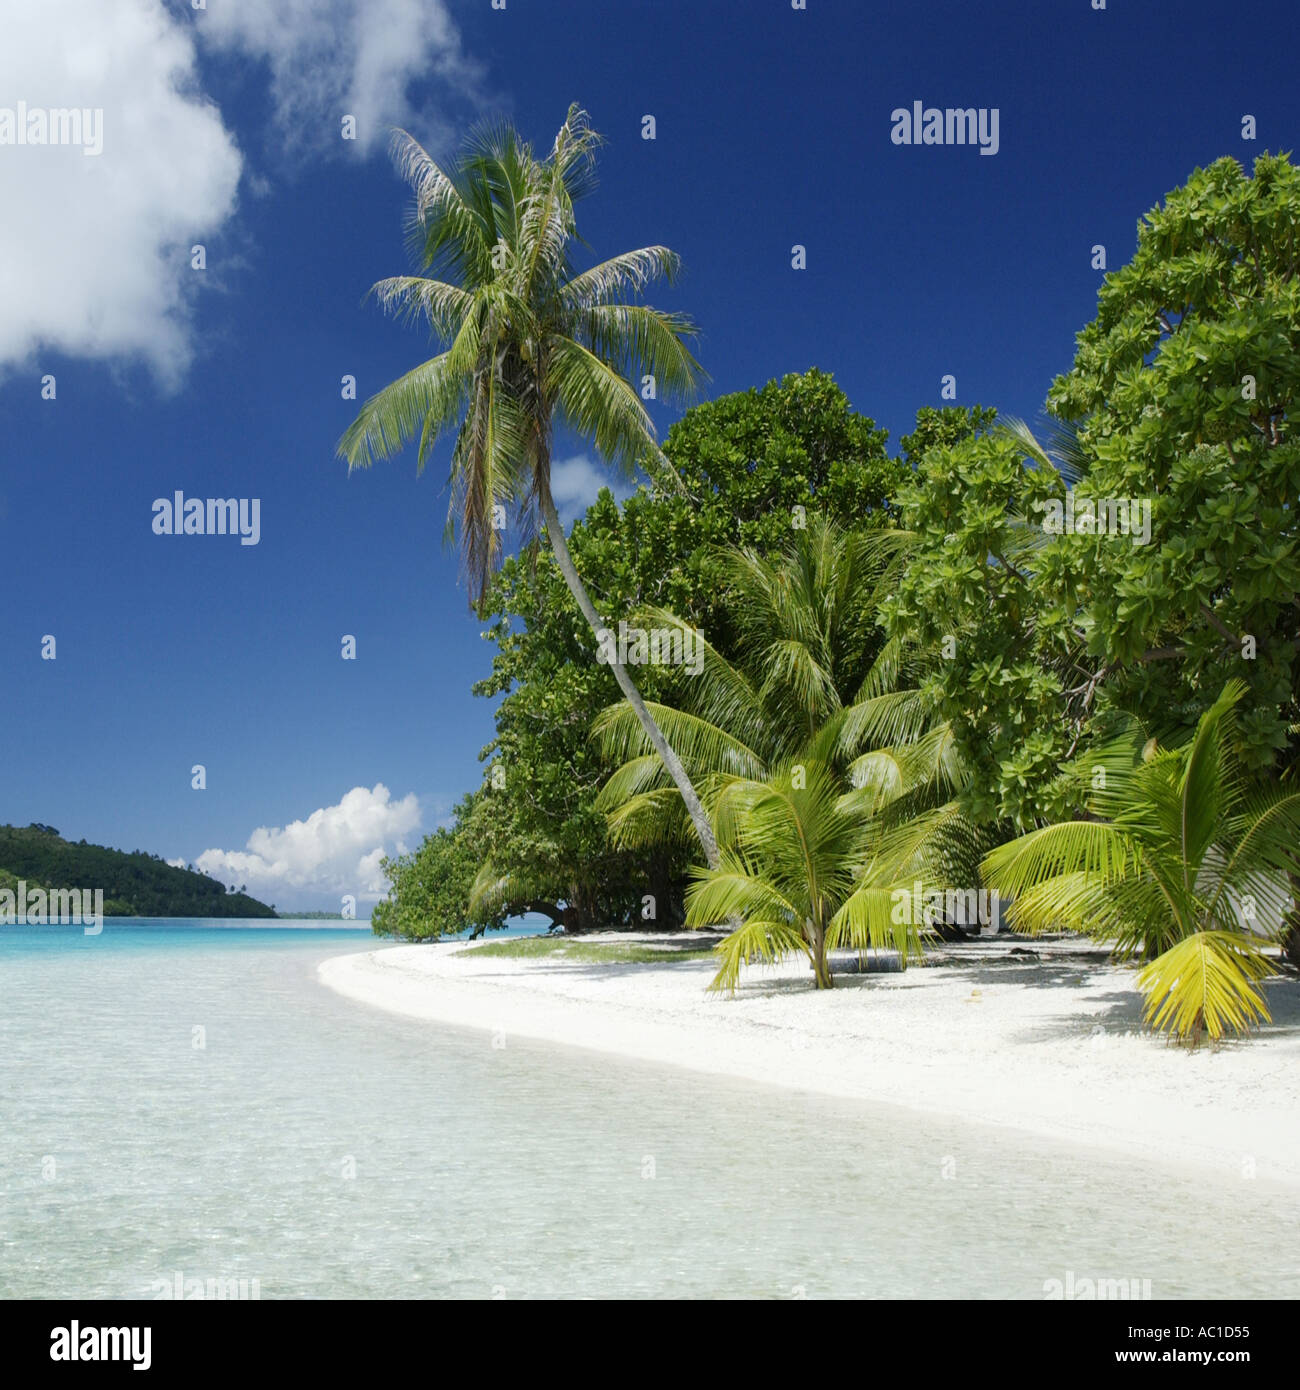 Tropical paradise of Bora Bora in French Polynesia in the South Pacific - Stock Image